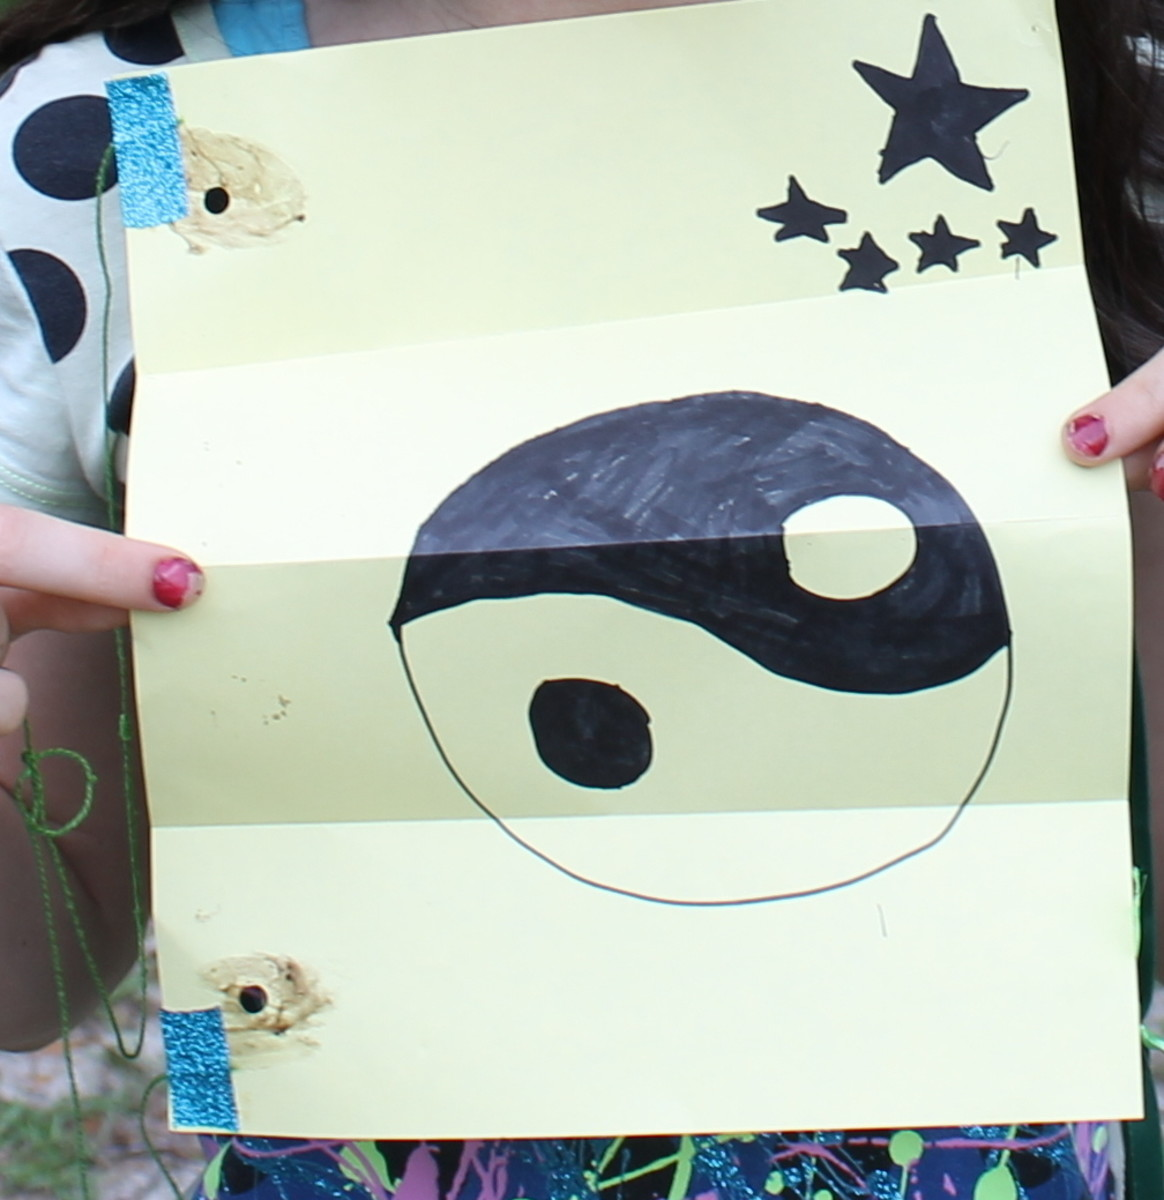 A kite create by an elementary-aged child